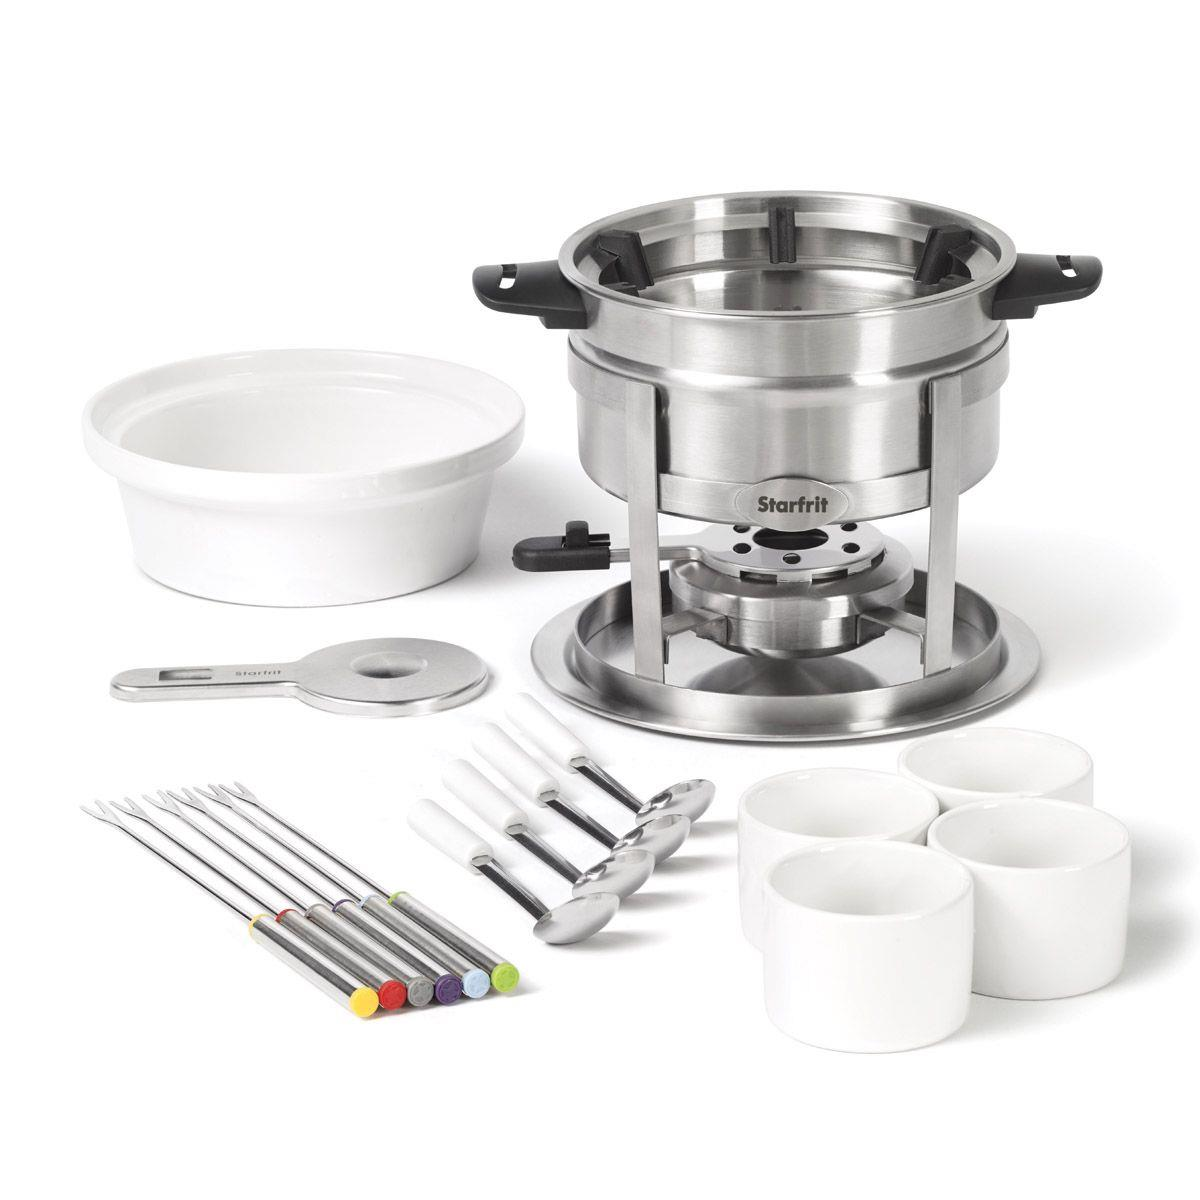 Starfrit 3-in-1 Fondue Set